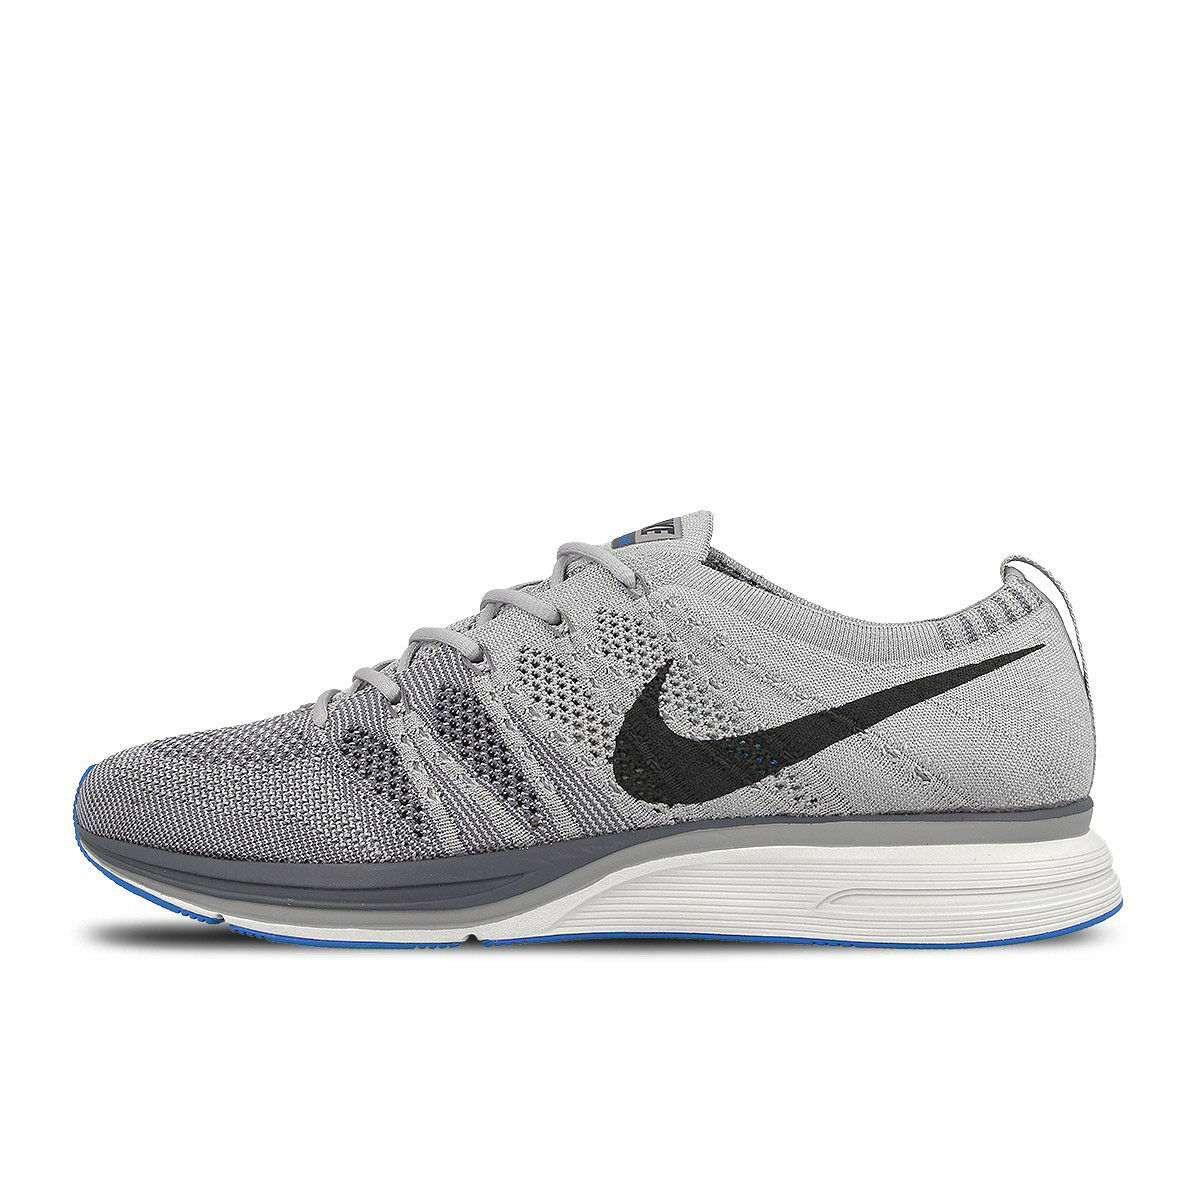 Nike Men Flyknit Trainer Reflective Running Shoes Grey AH8396-006 US7-11 04' New shoes for men and women, limited time discount